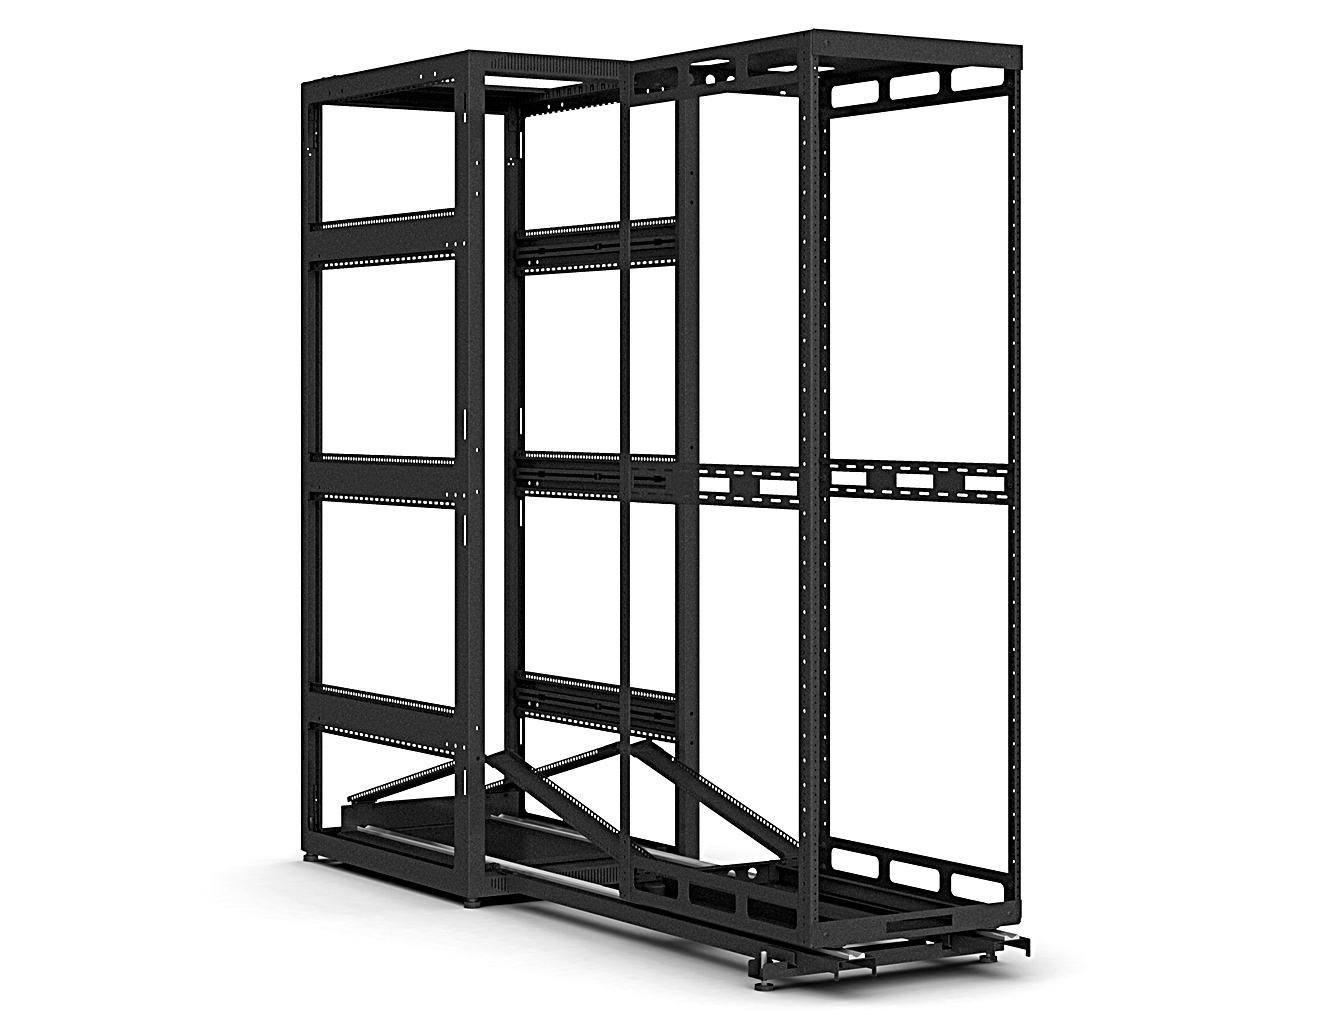 Part of the AXS Family of Slide-Out Racks, the AXS-IR is OPM-Certified and Seismically Rated